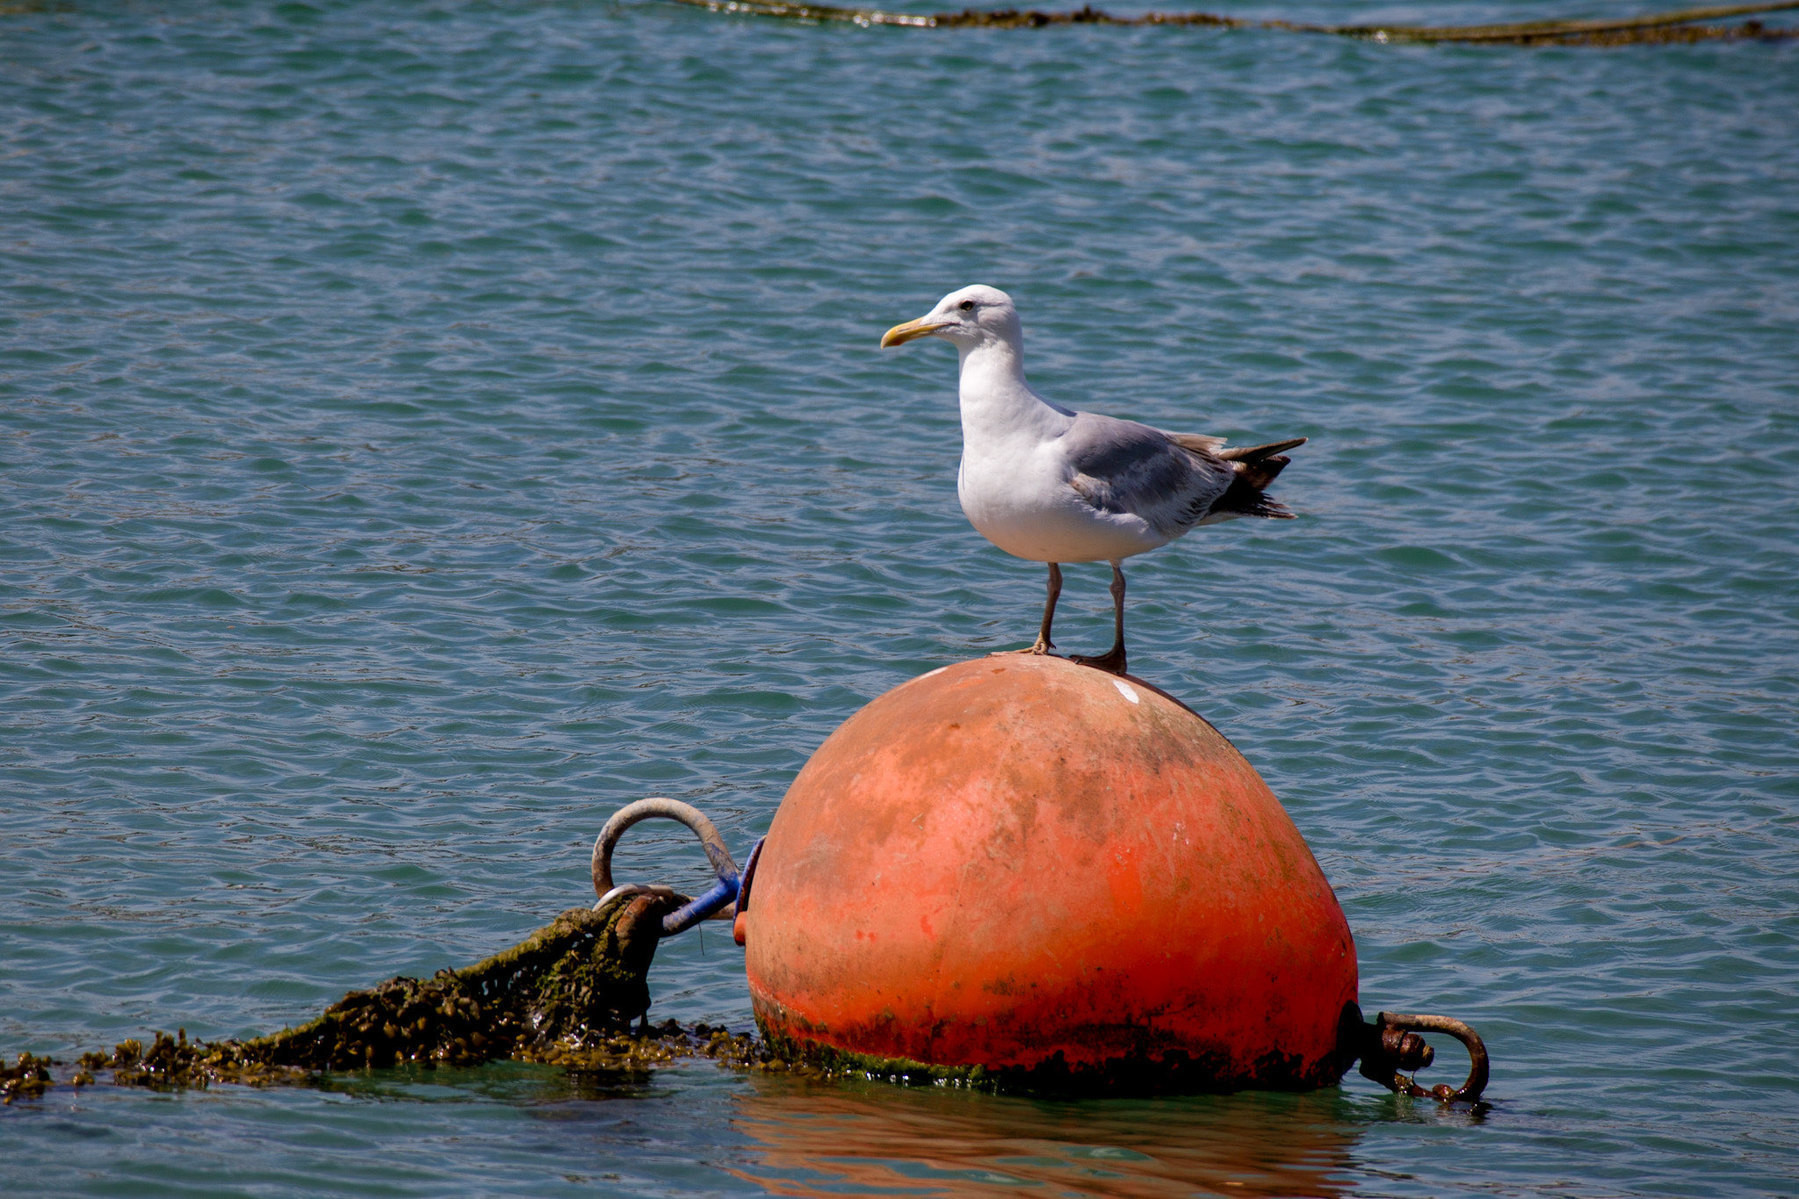 A seagull on s bouy in the river Adur